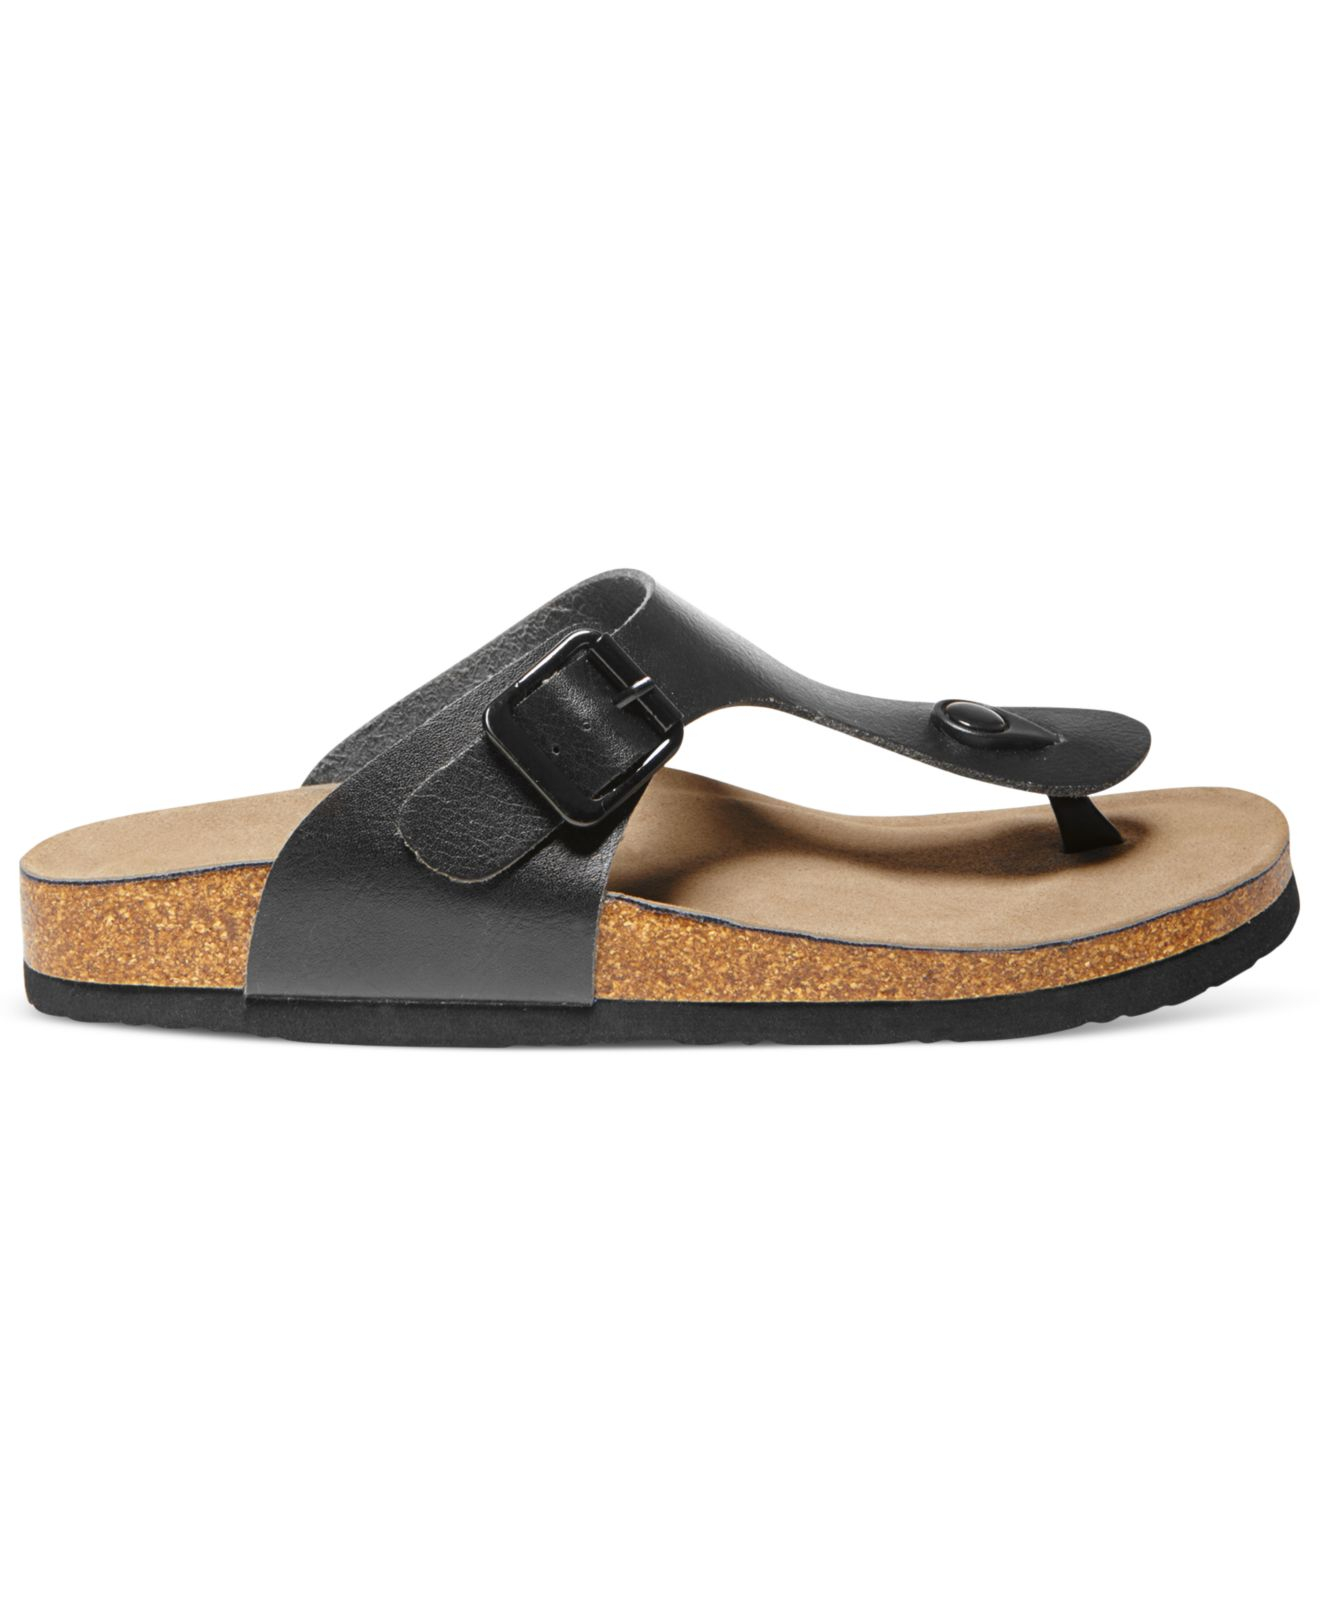 720e9f989fa54 Lyst - Madden Girl Boise Footbed Thong Sandals in Black